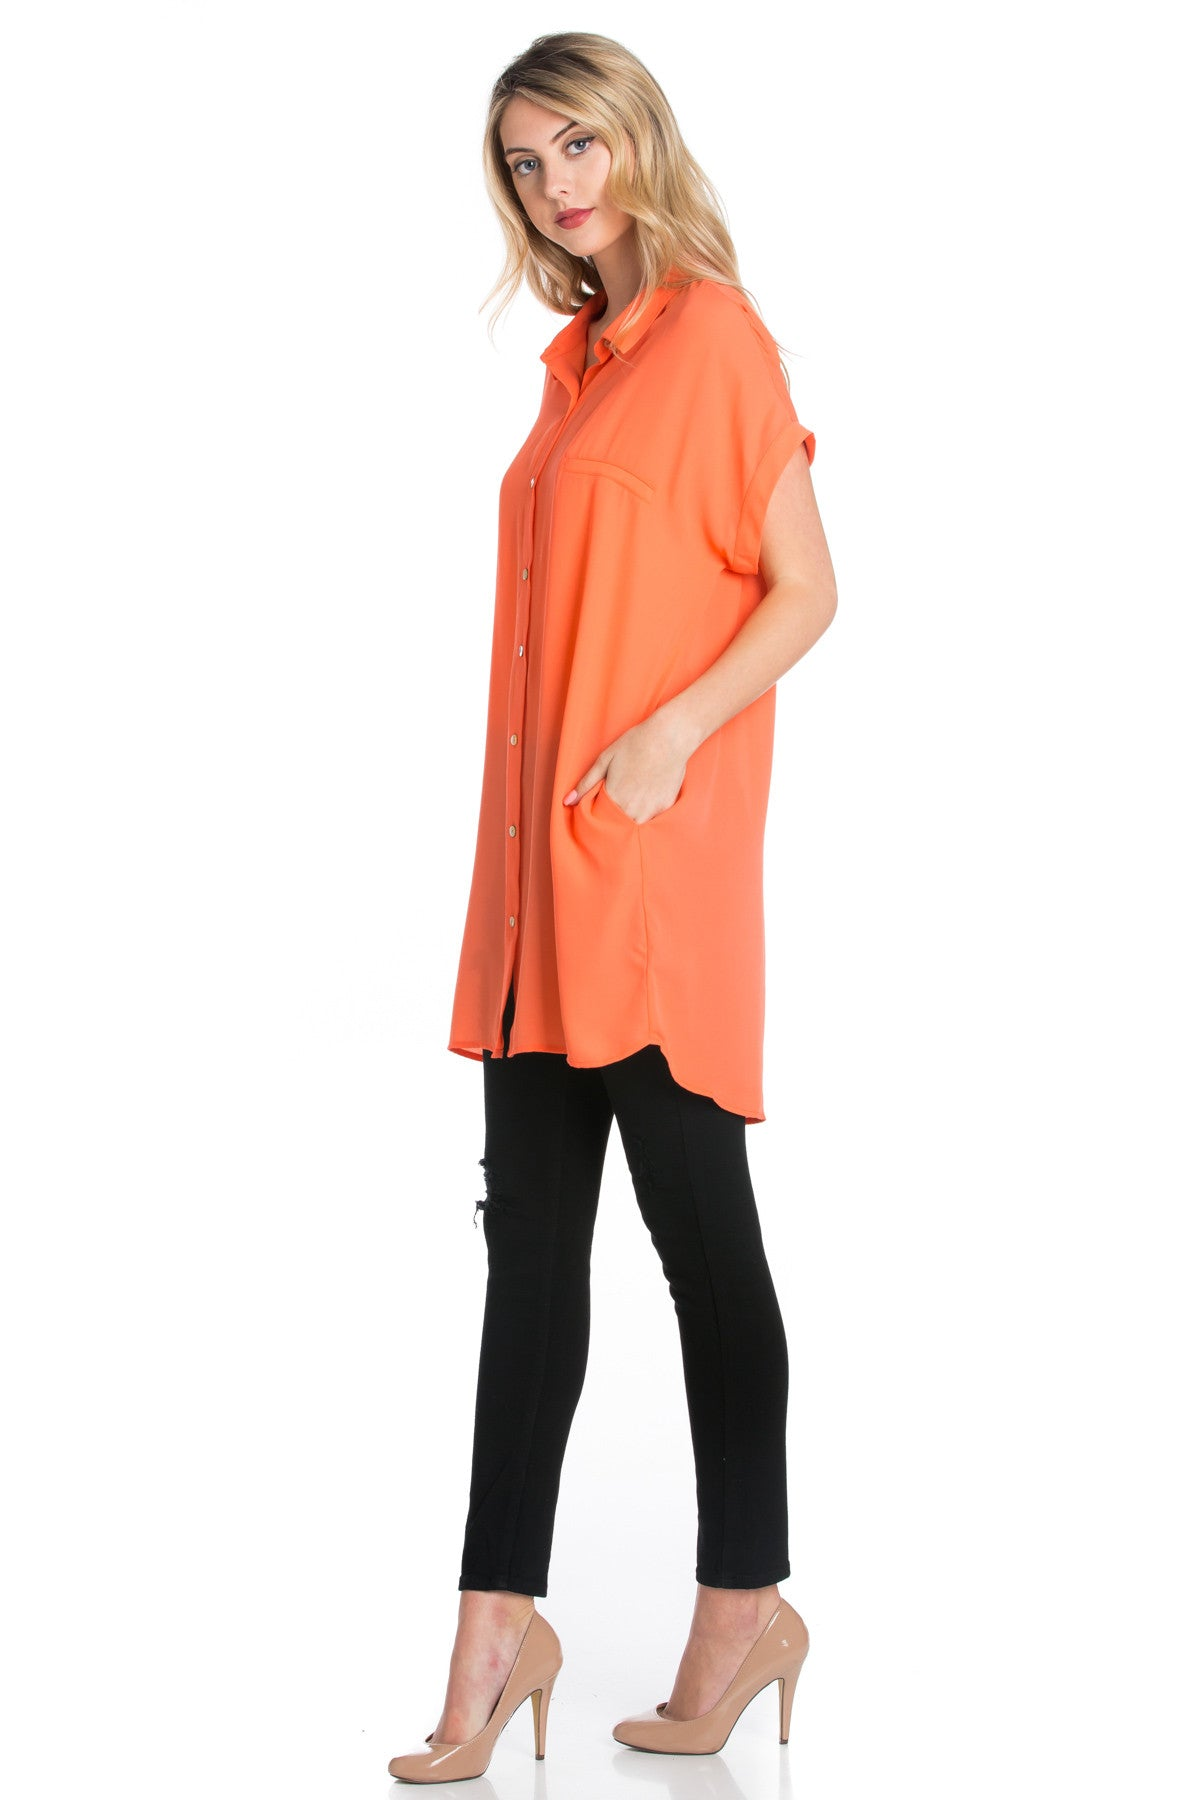 Short Sleeve Longline Button Down Chiffon Top in Coral - Tops - My Yuccie - 5